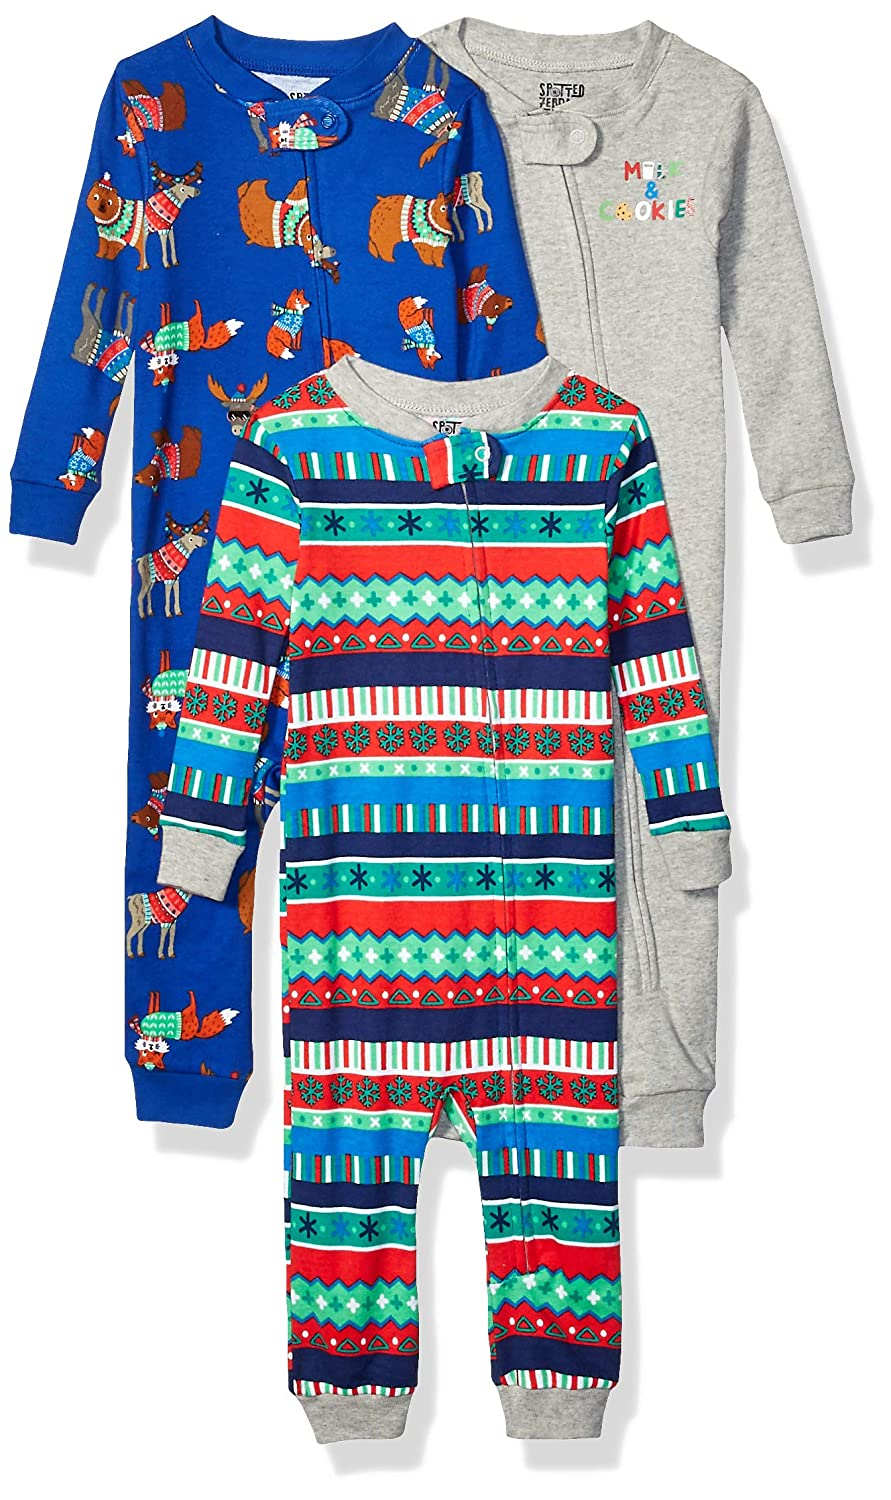 Marchio Spotted Zebra 3-Pack Snug-Fit Cotton Footless Sleeper Pajamas Unisex-Bambini